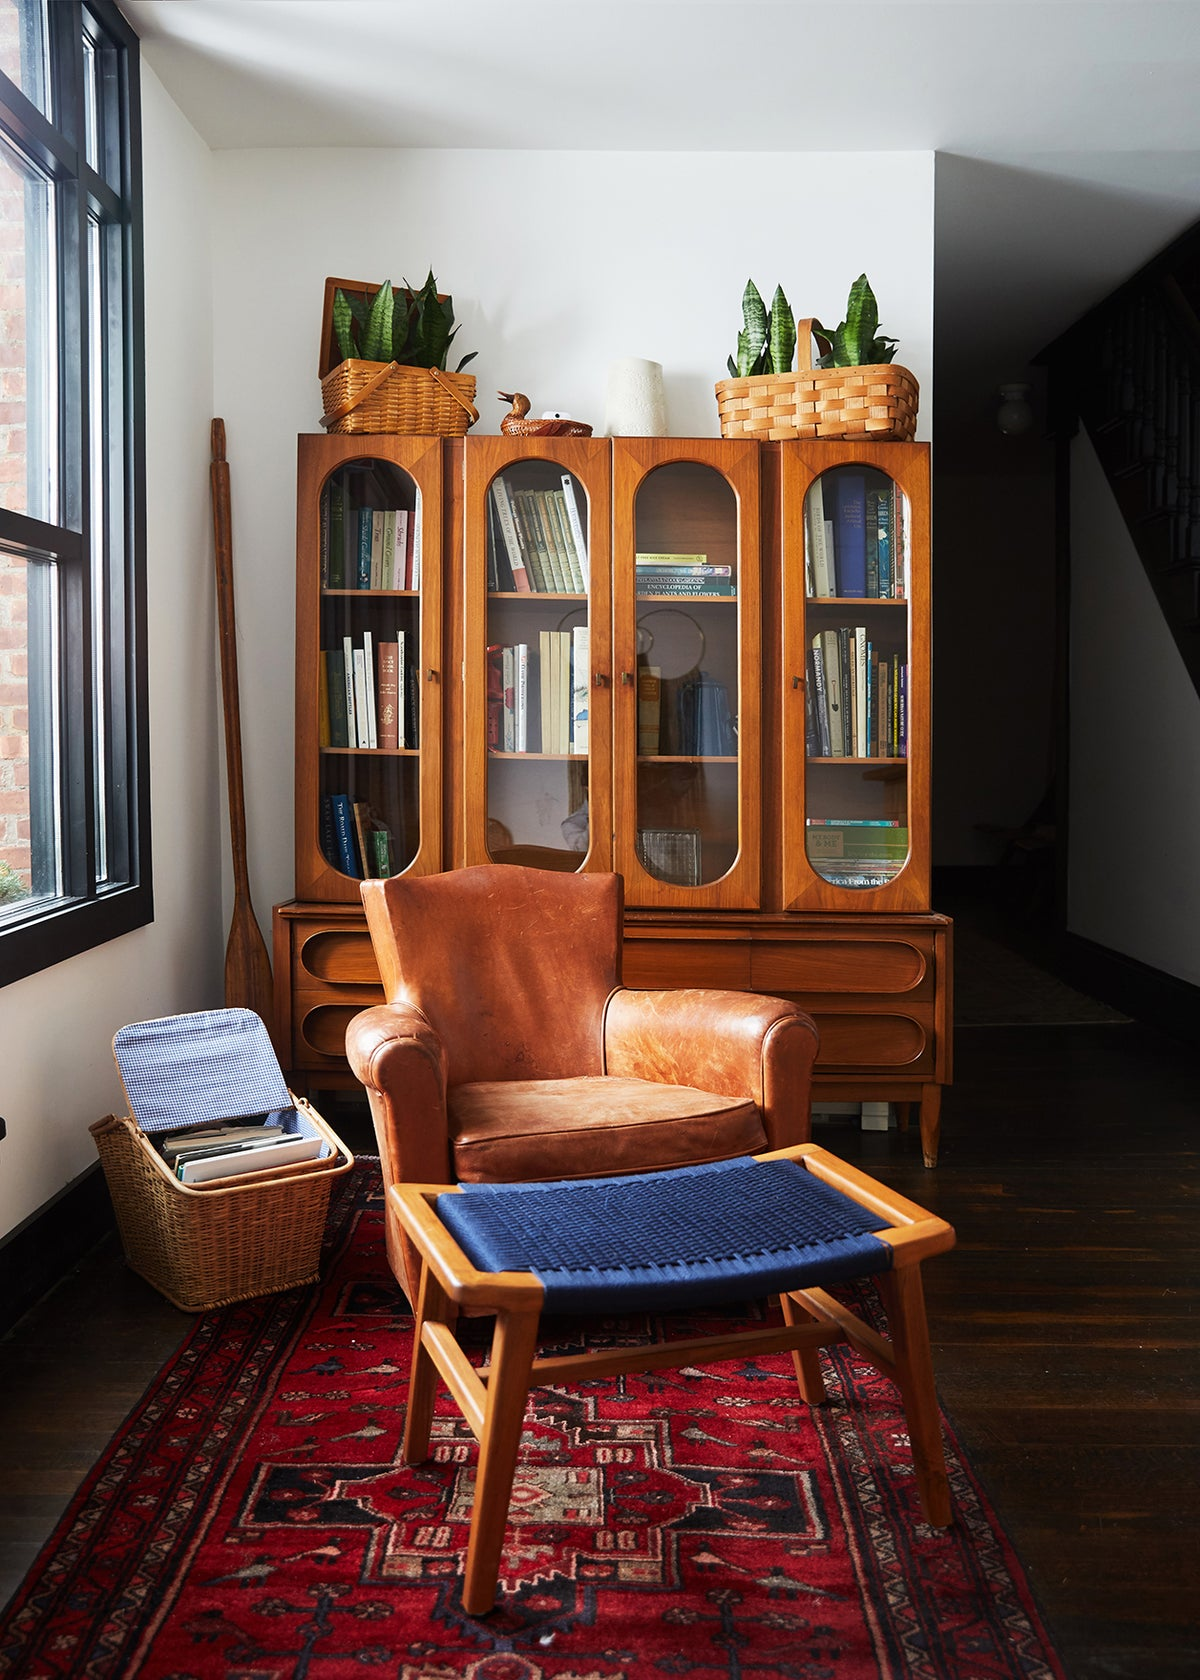 Eastwind Hotel & Bar, NY - hotel nook with a leather armchair, fabric ottoman, and vintage bookcase